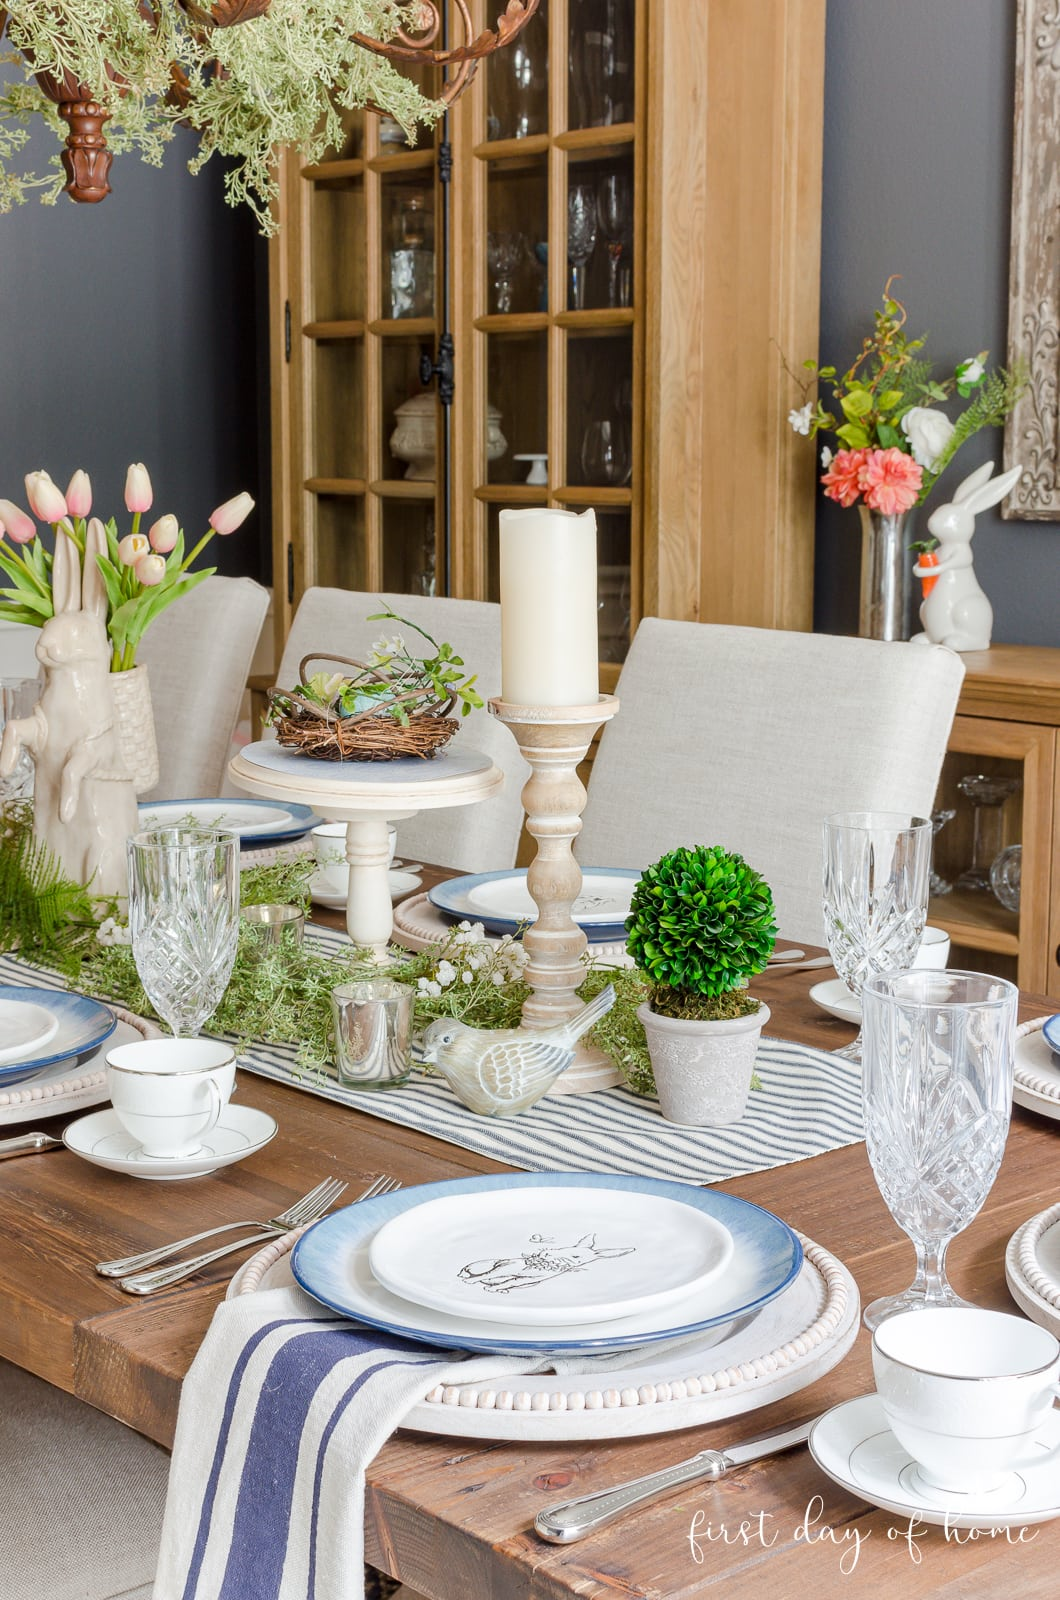 Spring table decor with bunnies, candles, blue ticking runner, and greenery